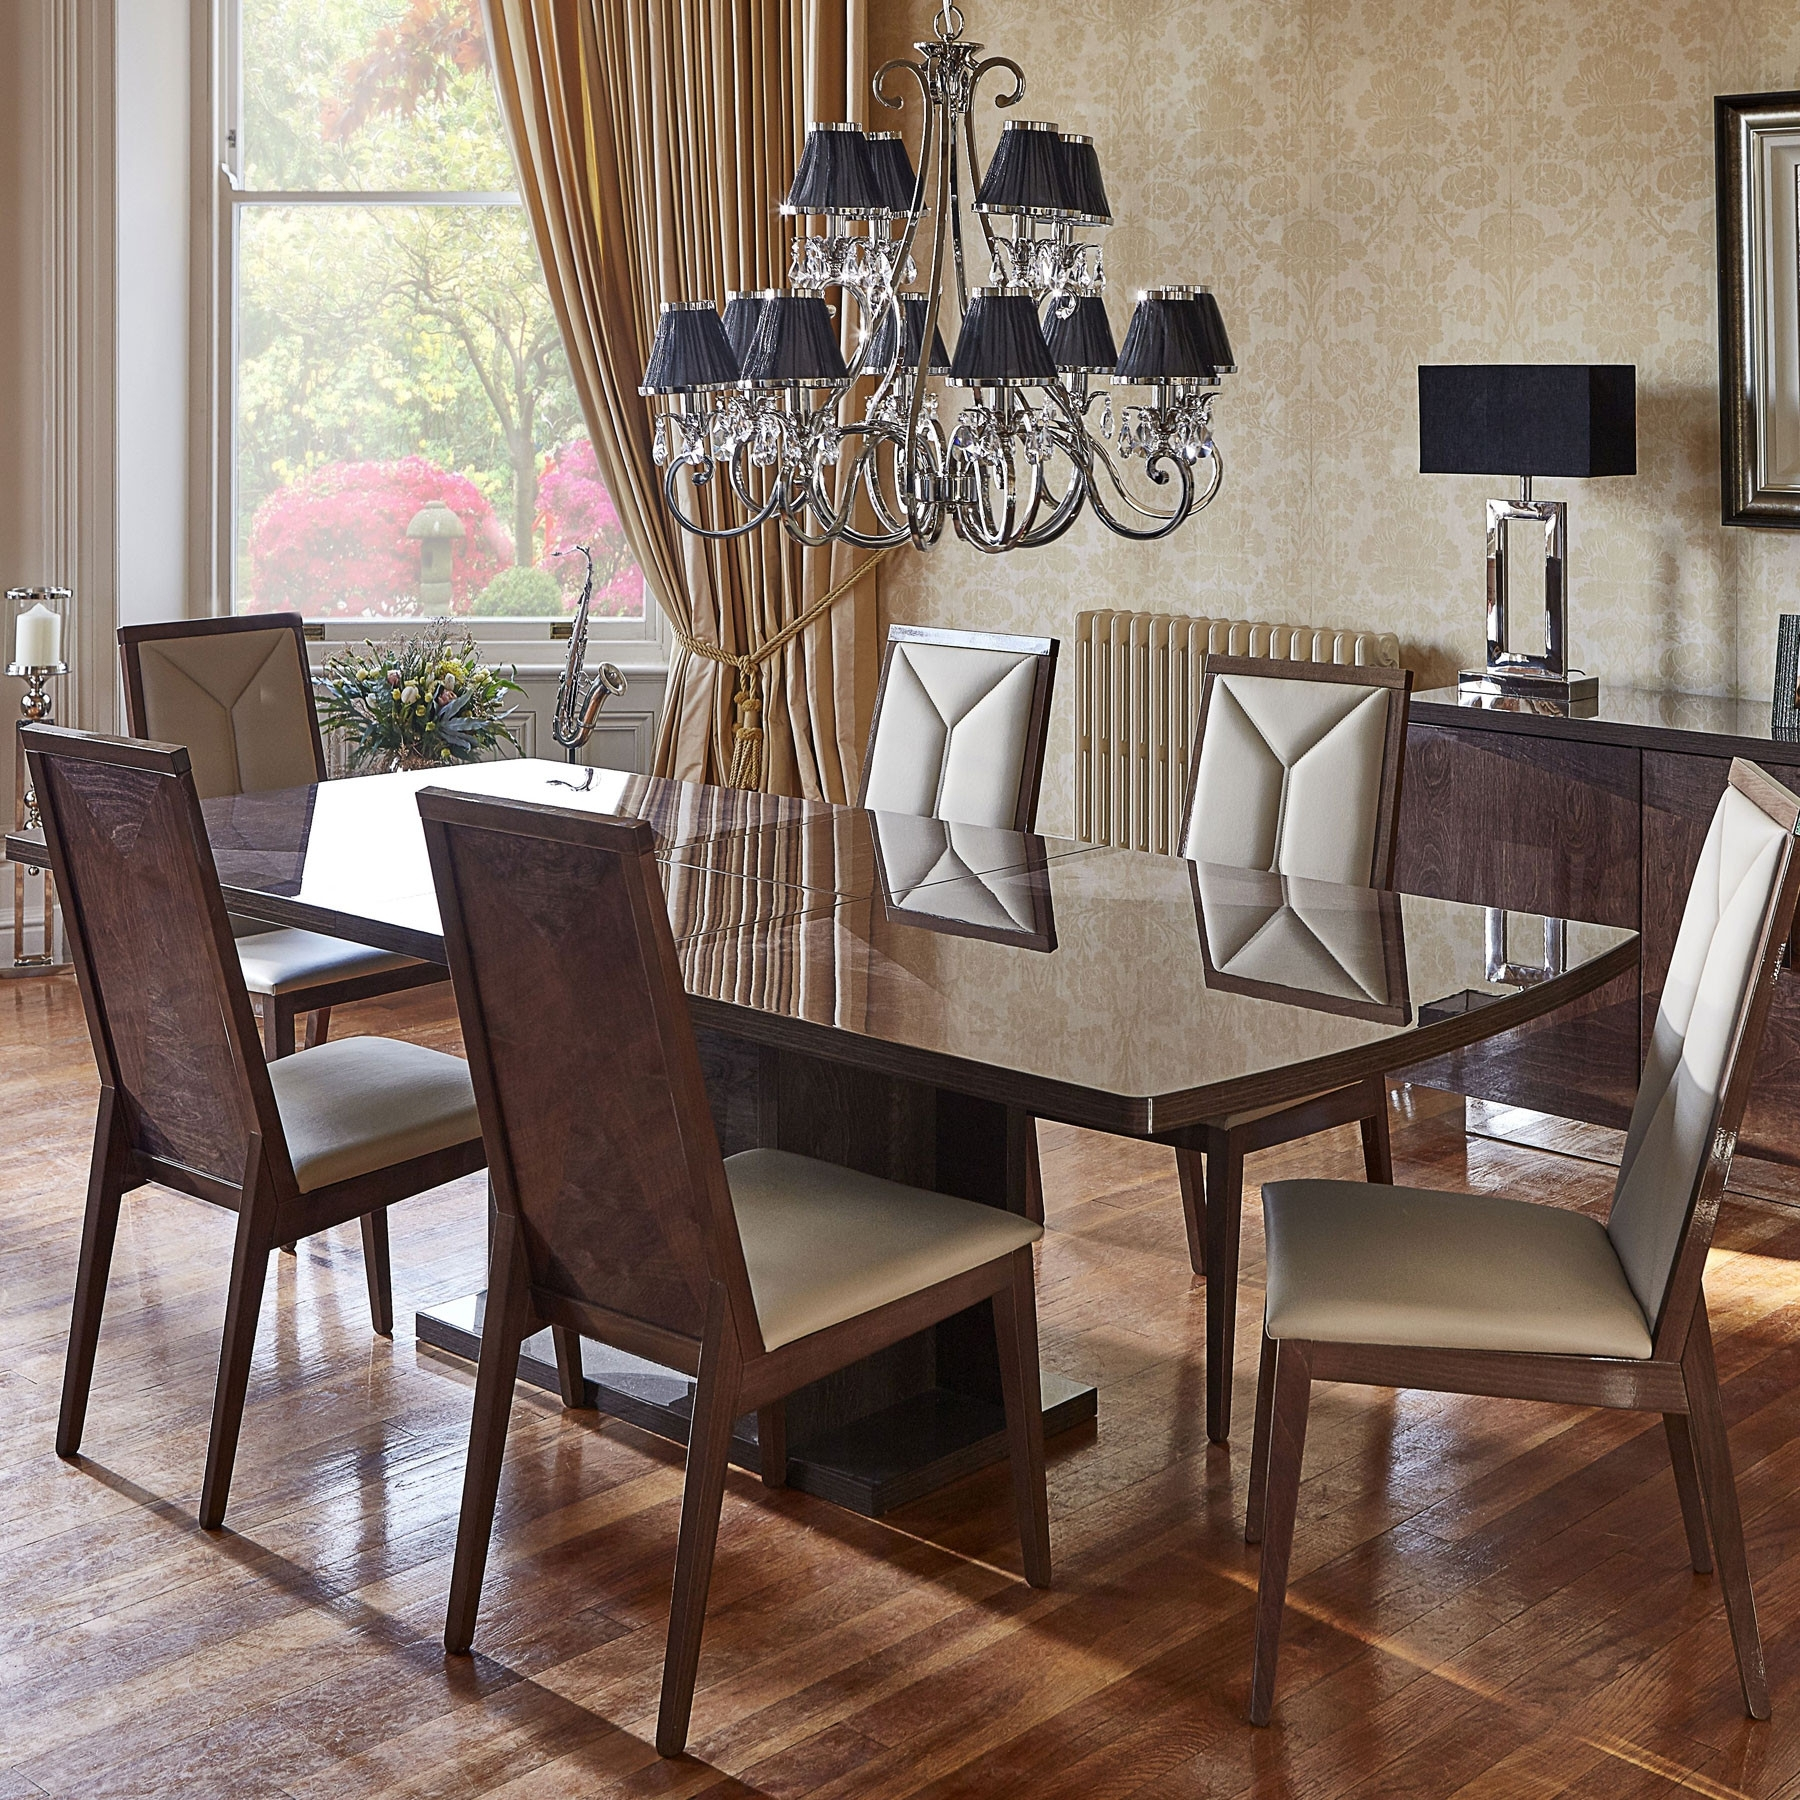 Gloss Dining Tables Throughout Most Recent Vogue High Gloss Extending Dining Table & 6 Chairs (Gallery 4 of 25)